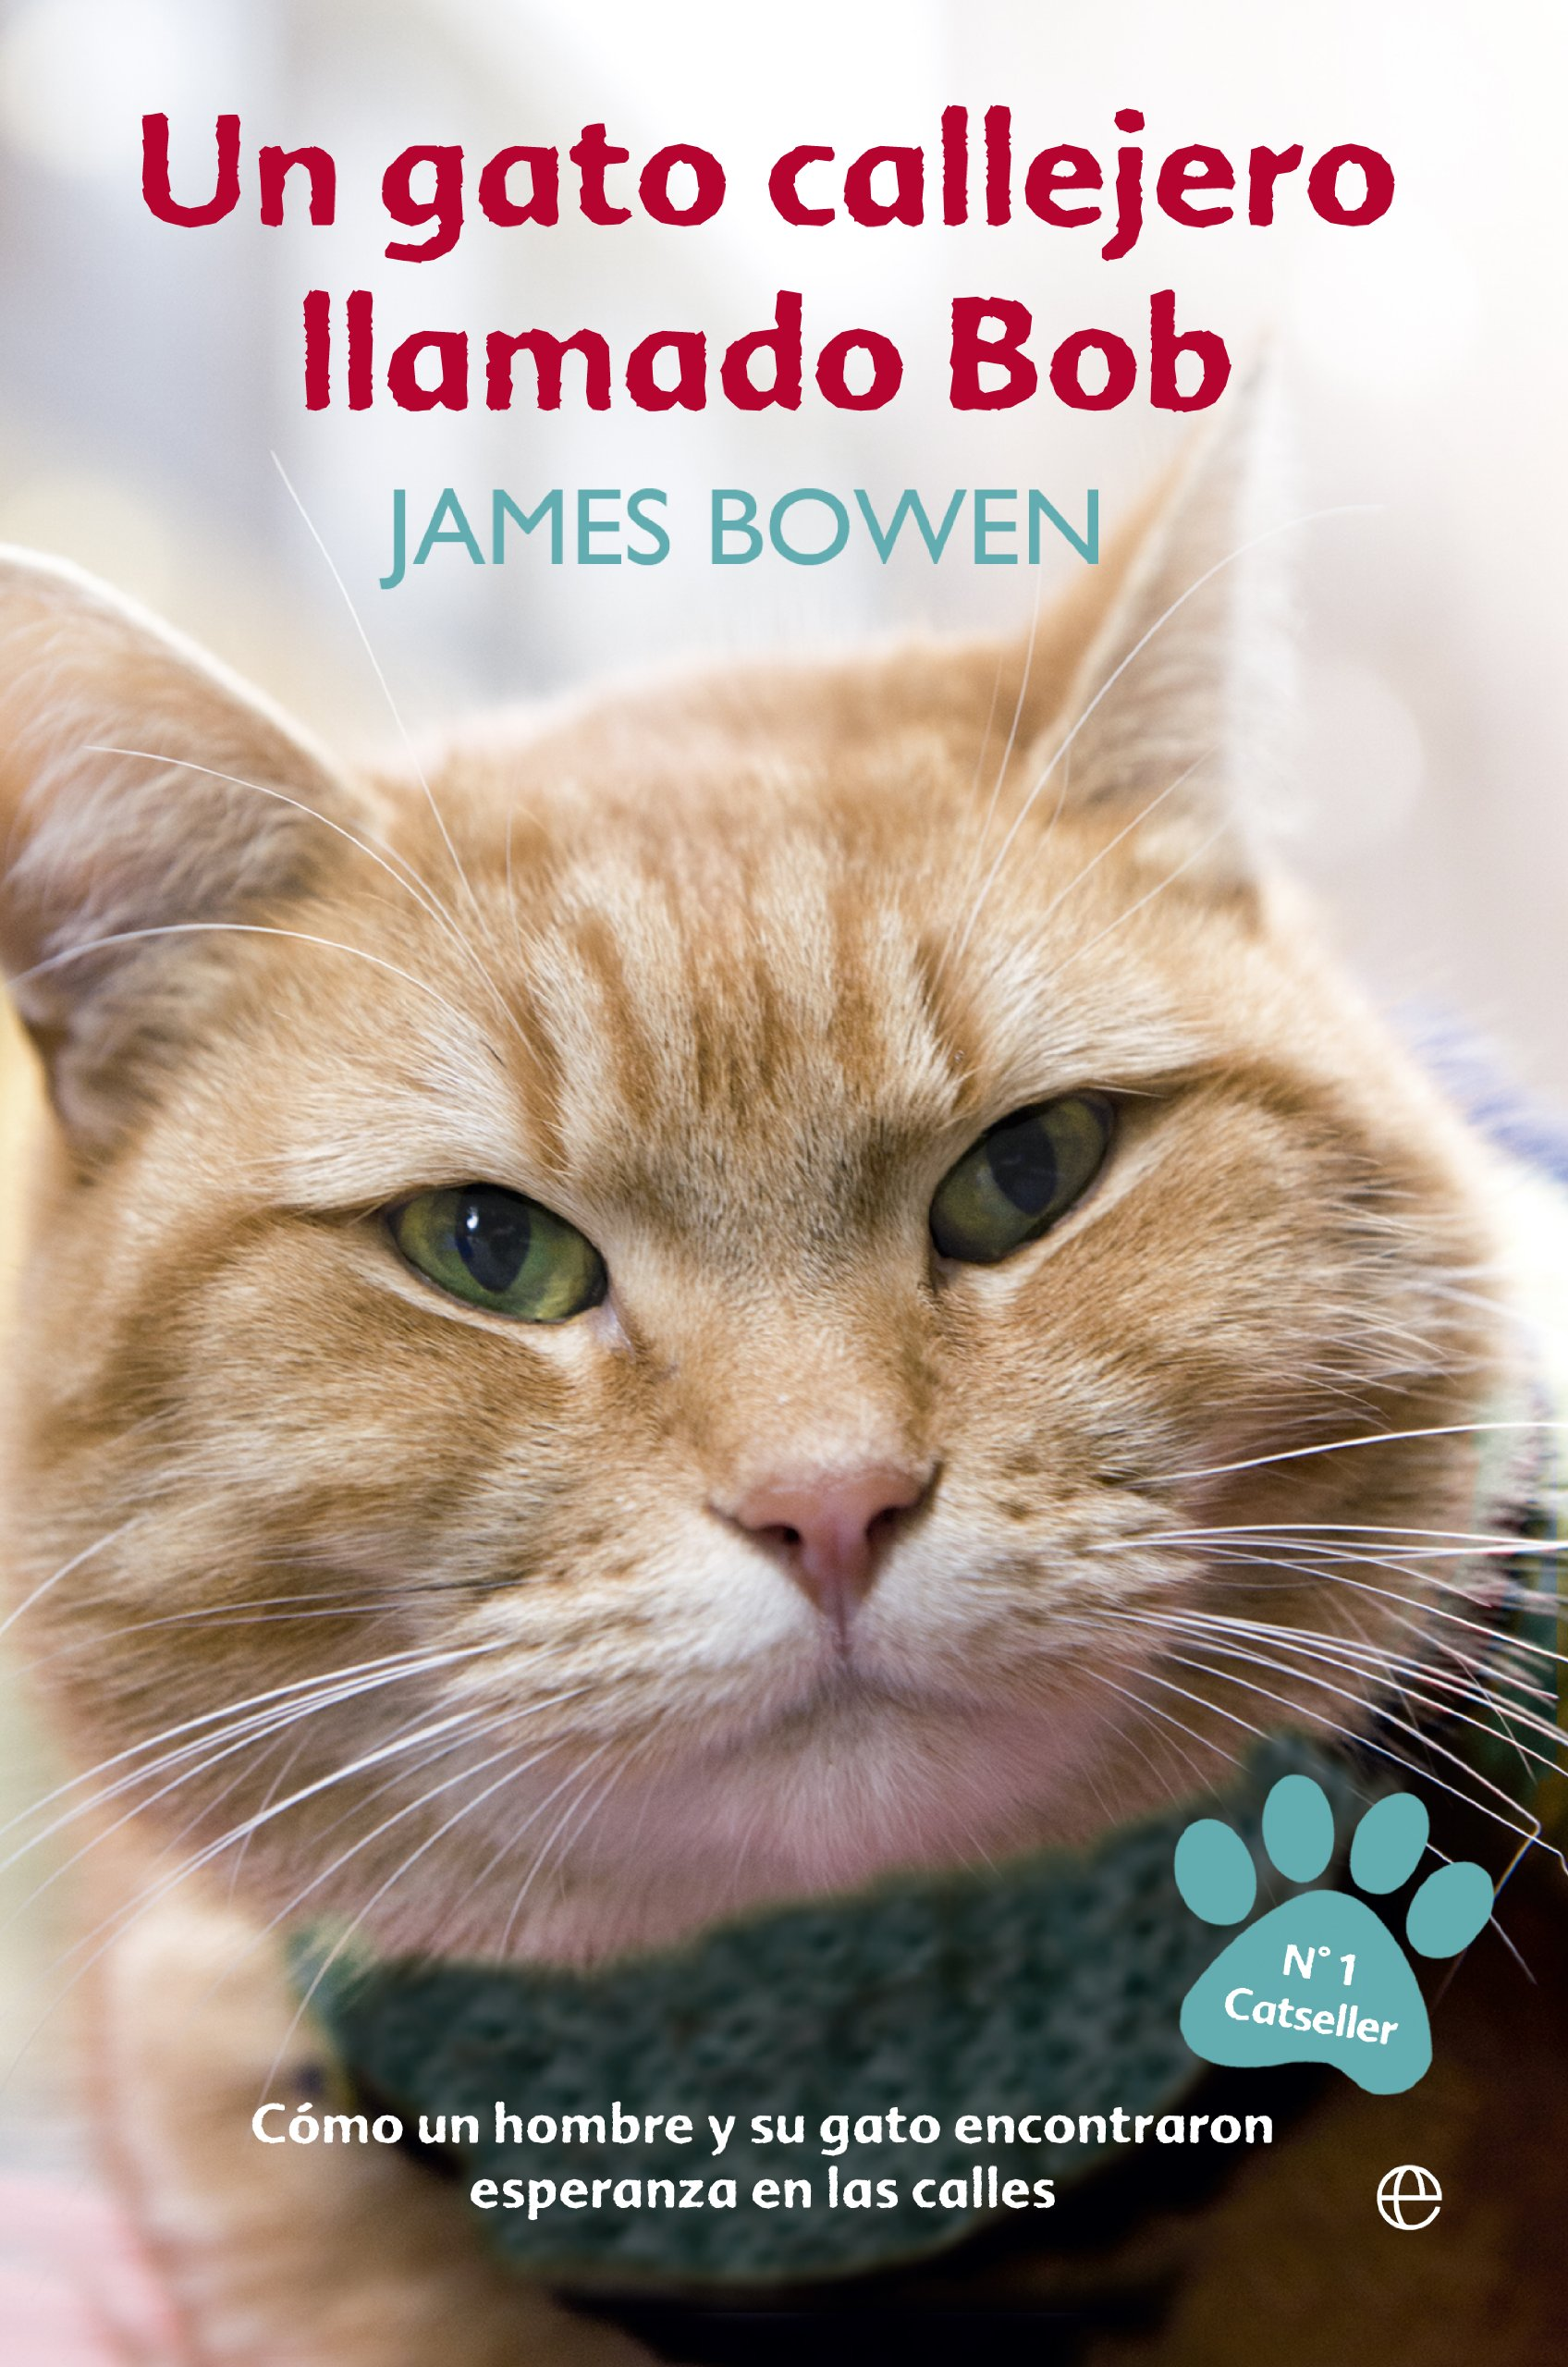 Un gato callejero llamado Bob: James Bowden: 9788490607305: Amazon.com: Books